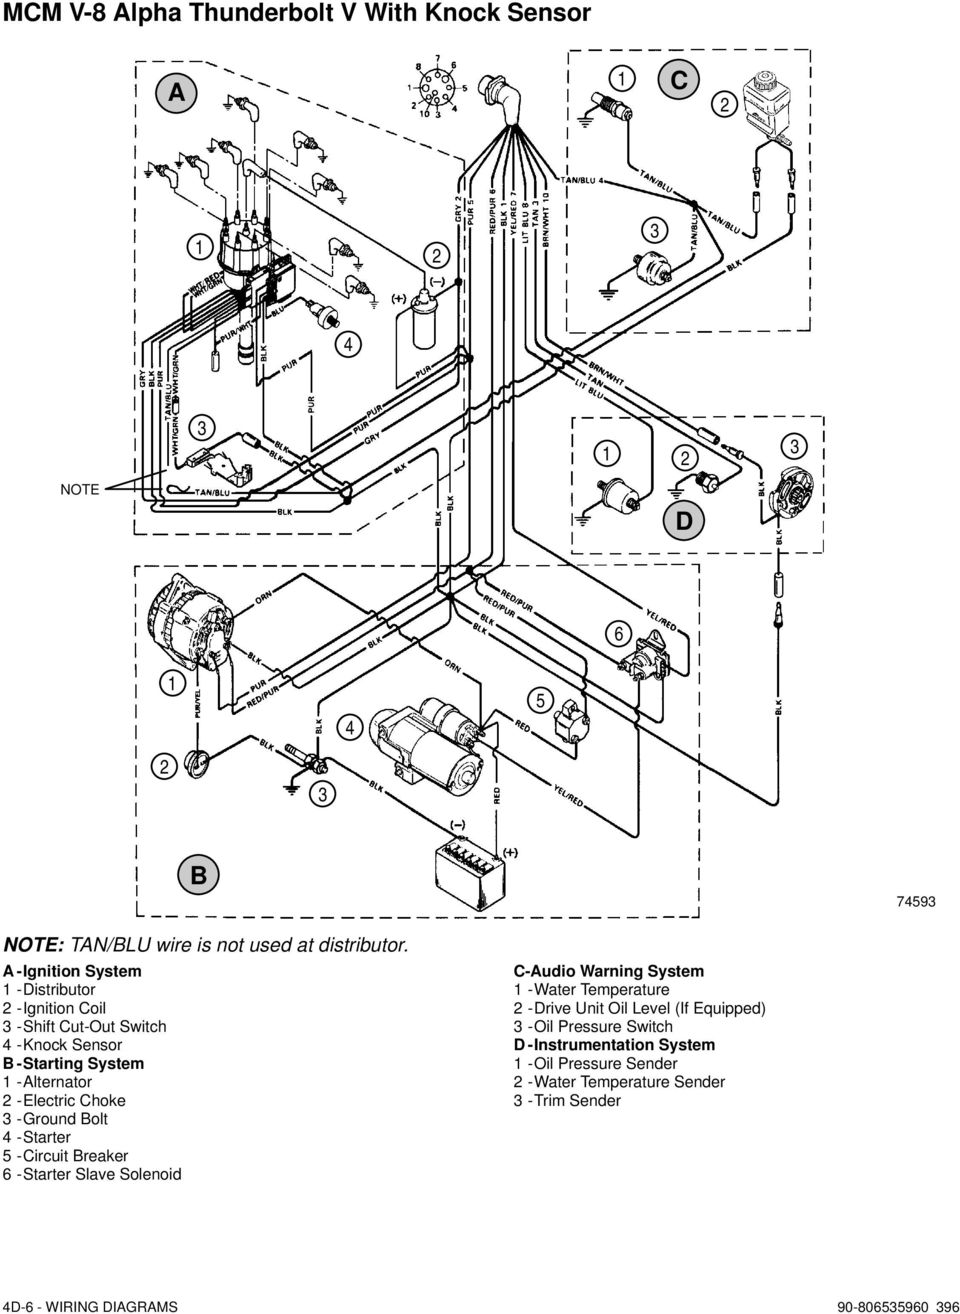 thunderbolt v ignition system wiring diagram wiring diagram mercruiser 7 4l mie lh gen v gm 454 8 1992 1996 wiring vespa ignition coil wiring diagram moreover universal marine furthermore 80 thunderbolt